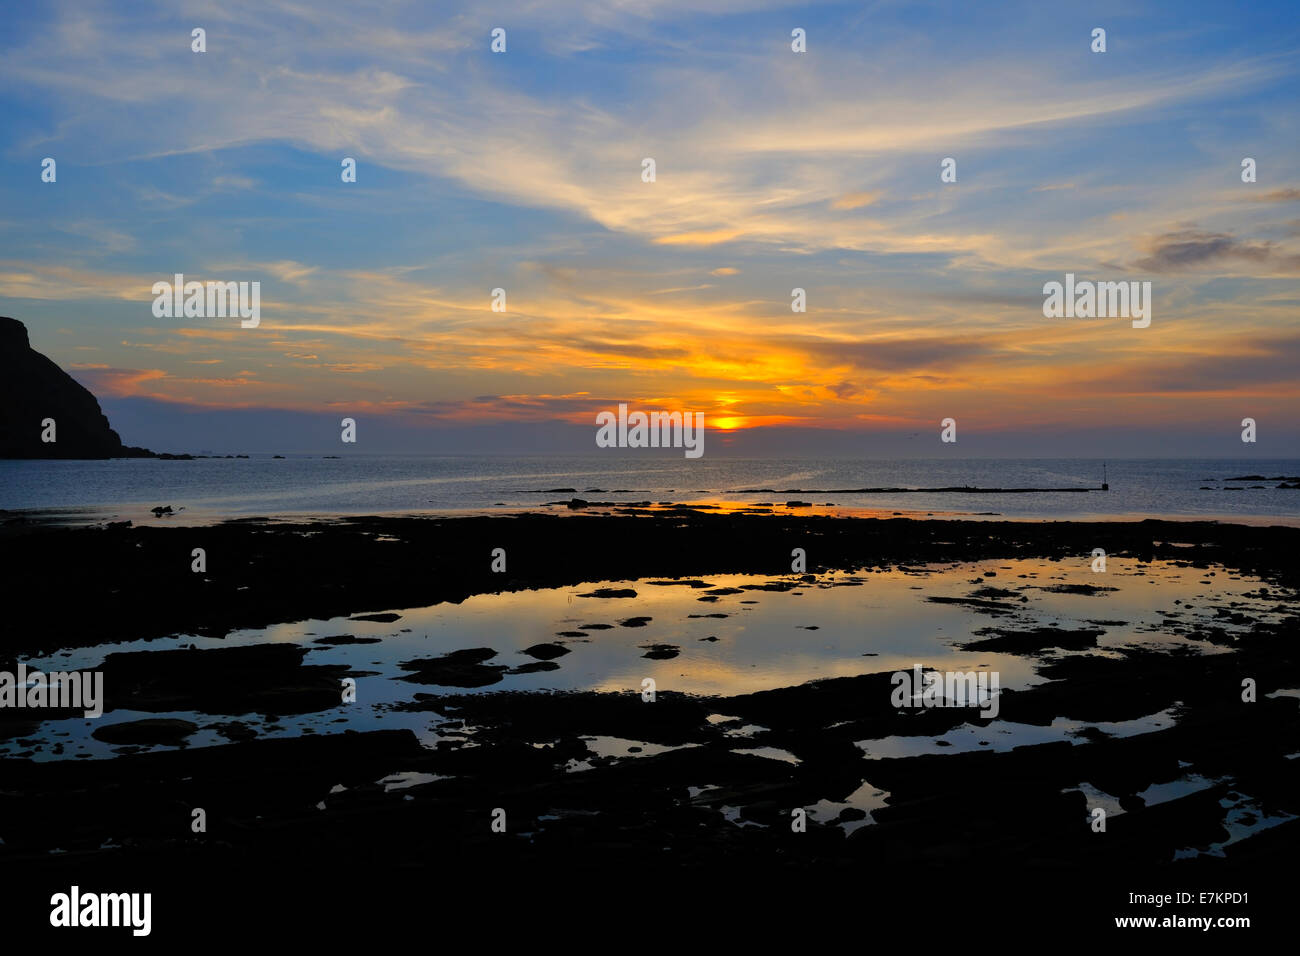 Sunset seen from the foreshore at Gardenstown, Moray Firth, Aberdeenshire, Scotland, UK - Stock Image